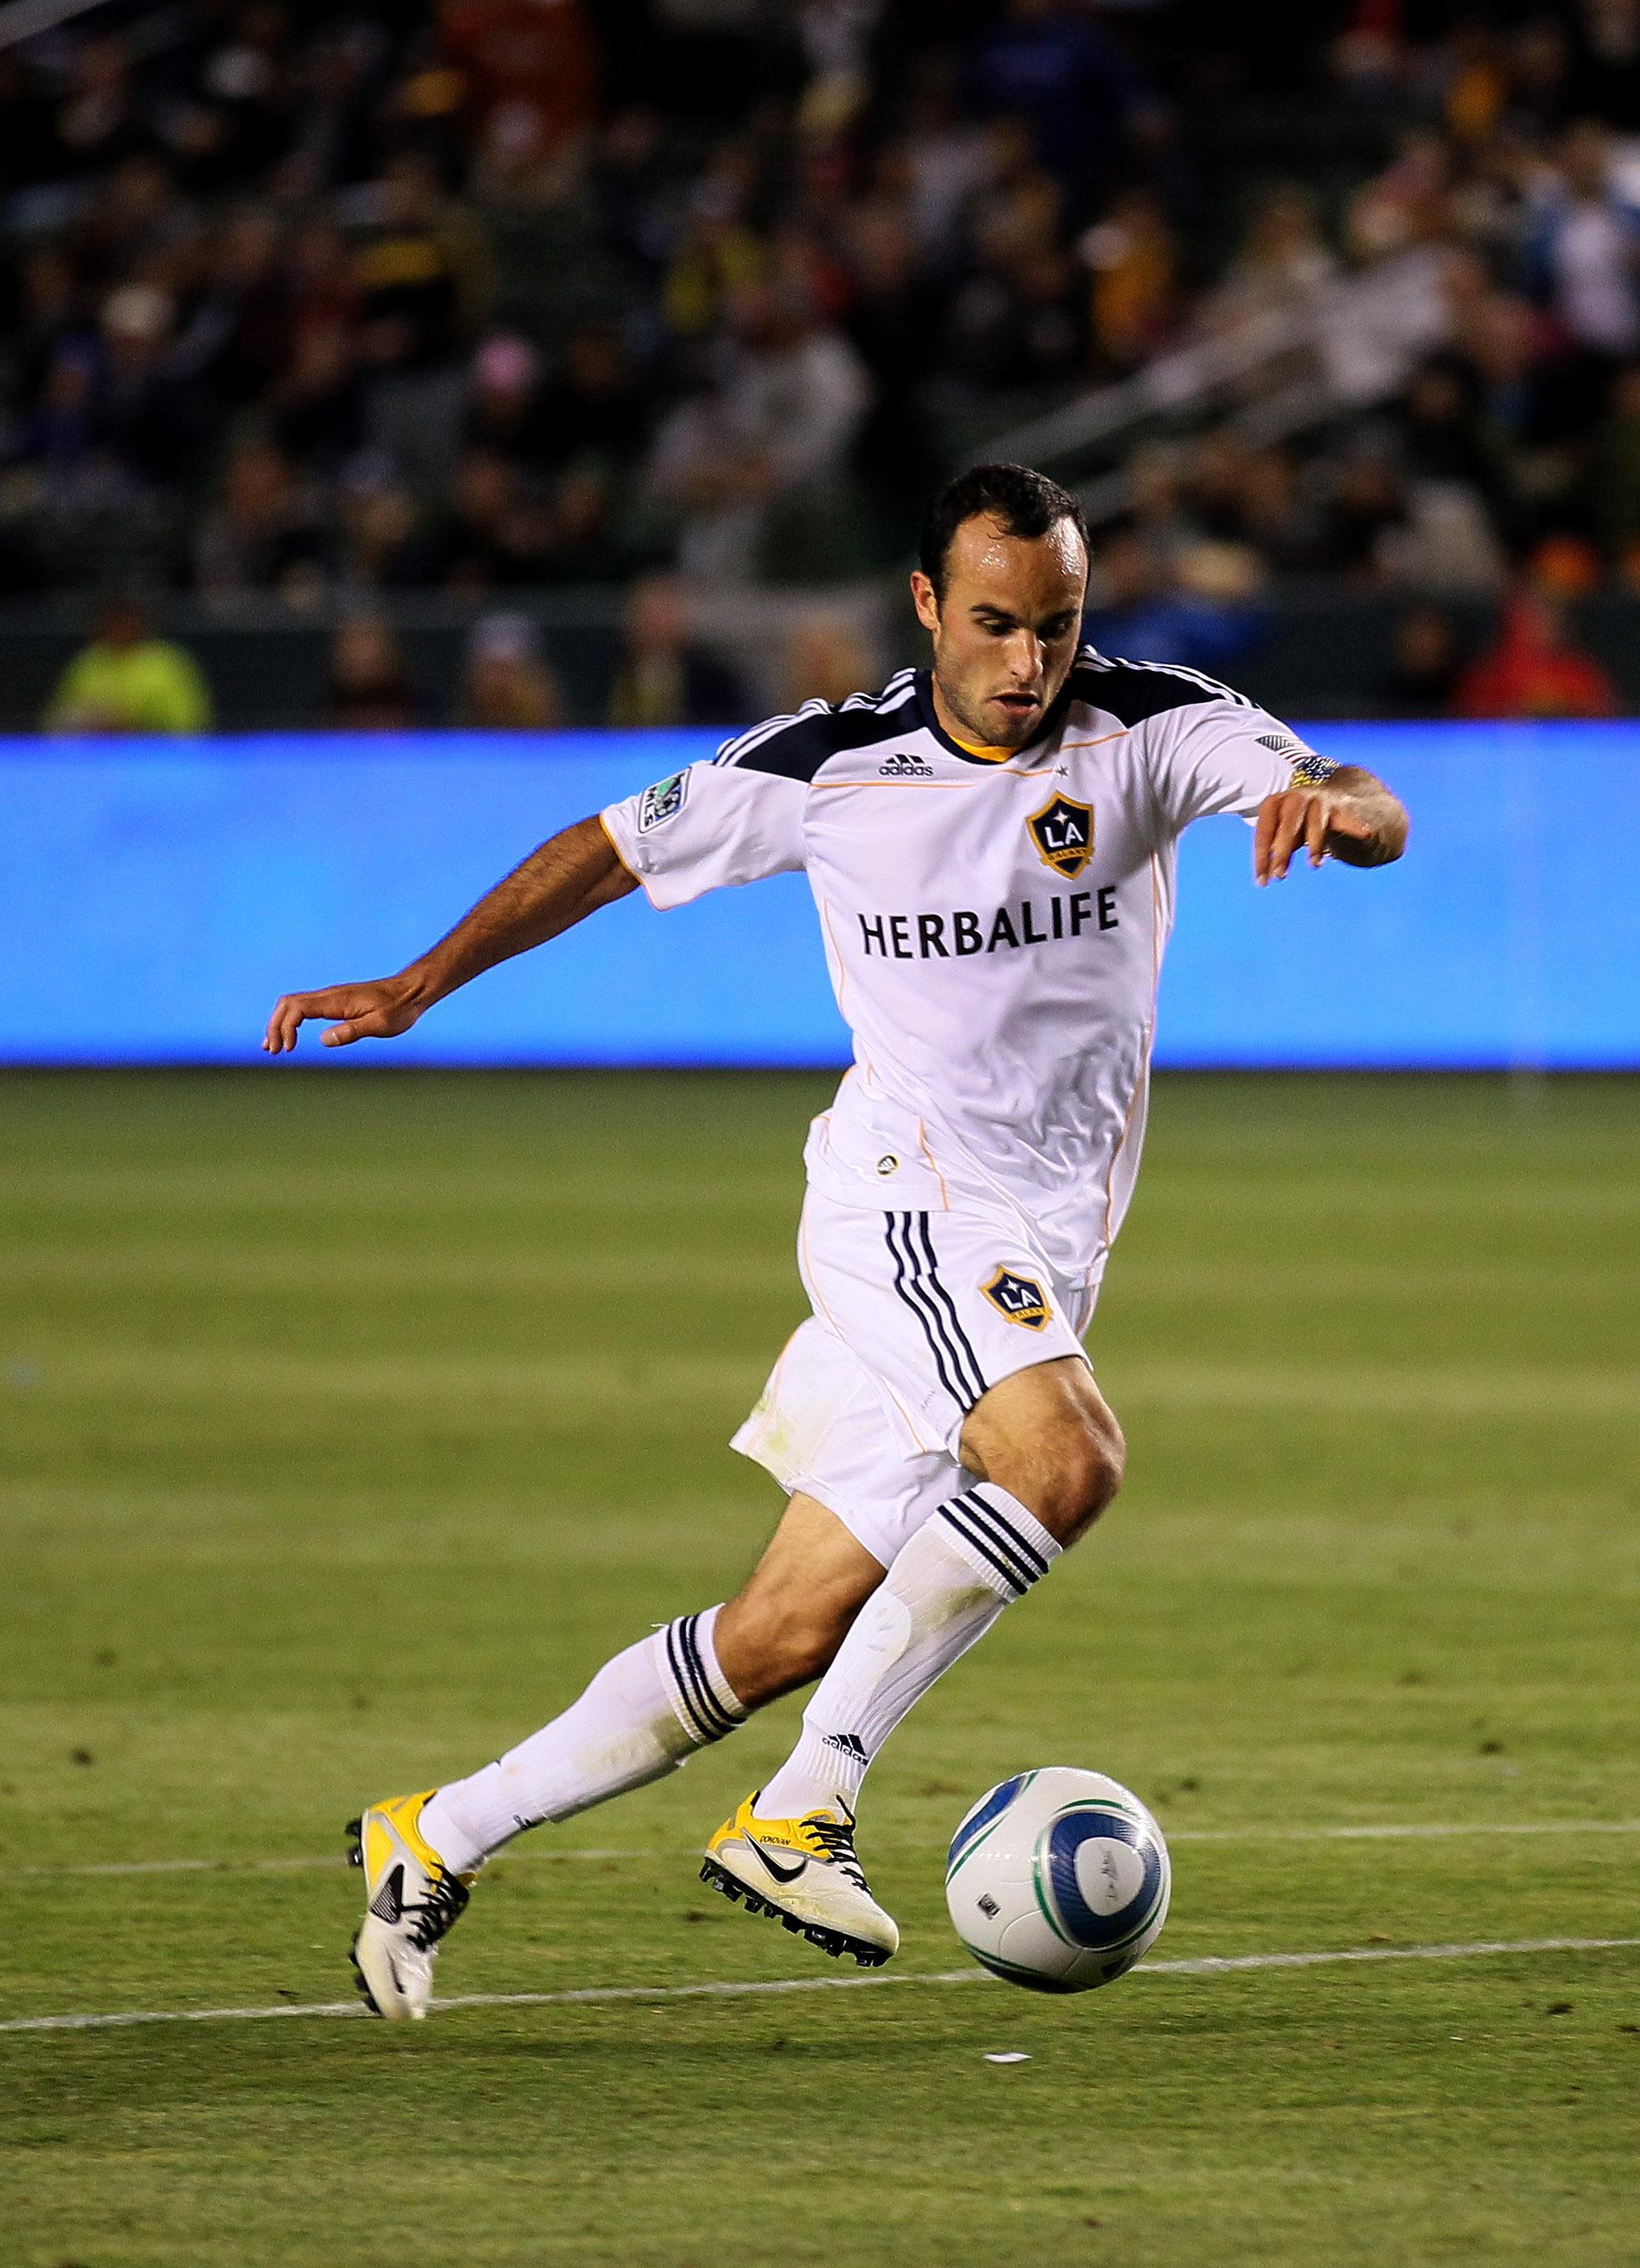 CARSON, CA - MAY 14:  Landon Donovan #10 of the Los Angeles Galaxy attacks with the ball against Sporting Kansas City at The Home Depot Center on May 14, 2011 in Carson, California.  The Galaxy won 4-1.  (Photo by Stephen Dunn/Getty Images)